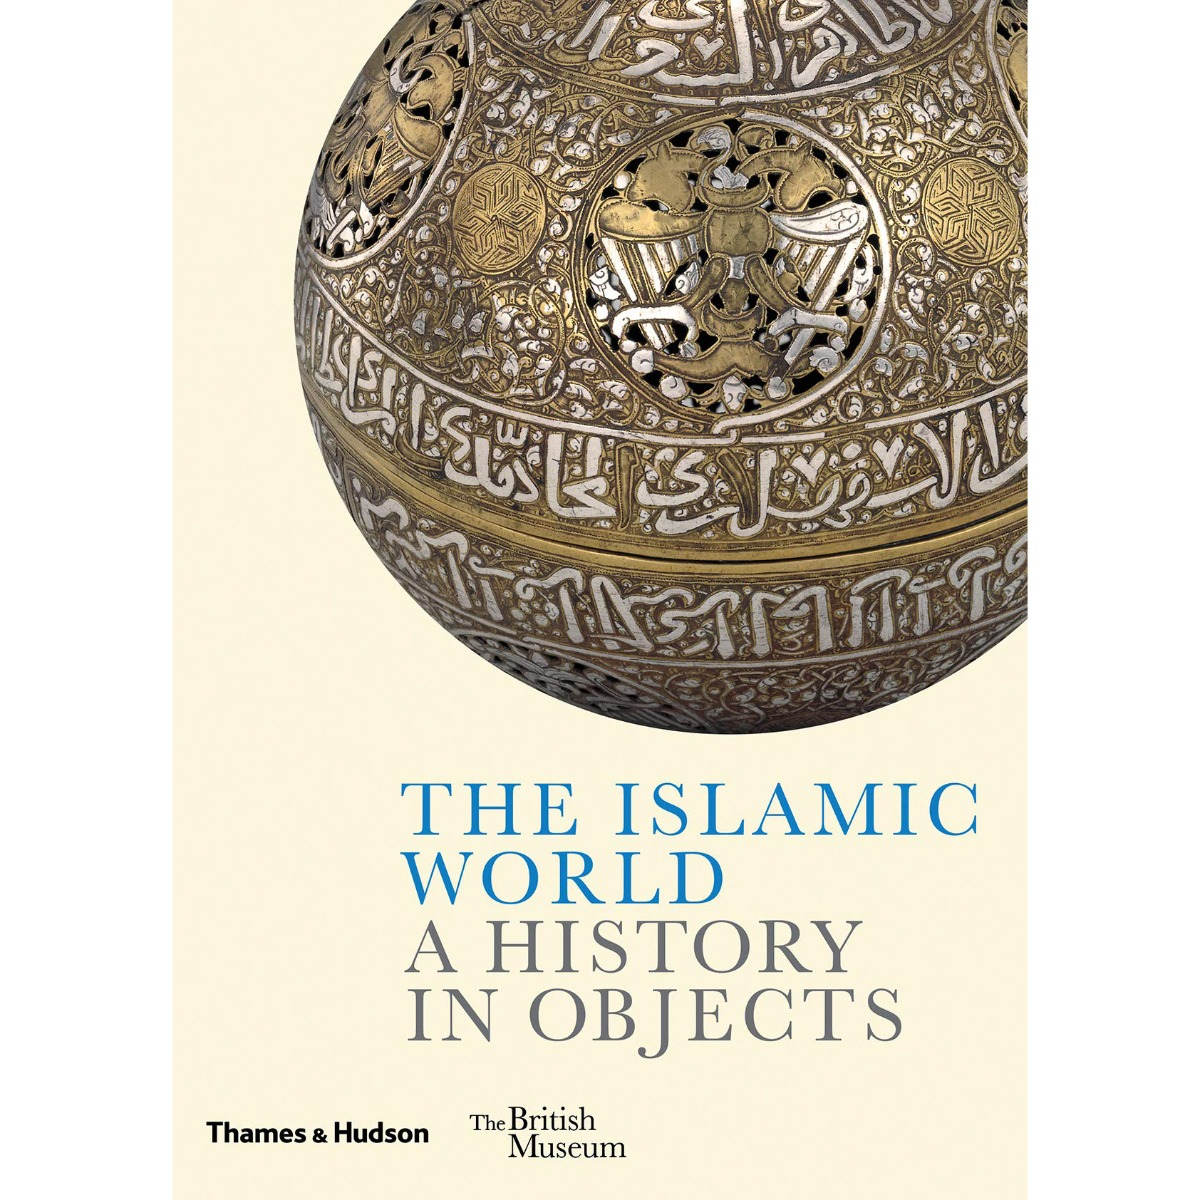 The Islamic World: A History in Objects